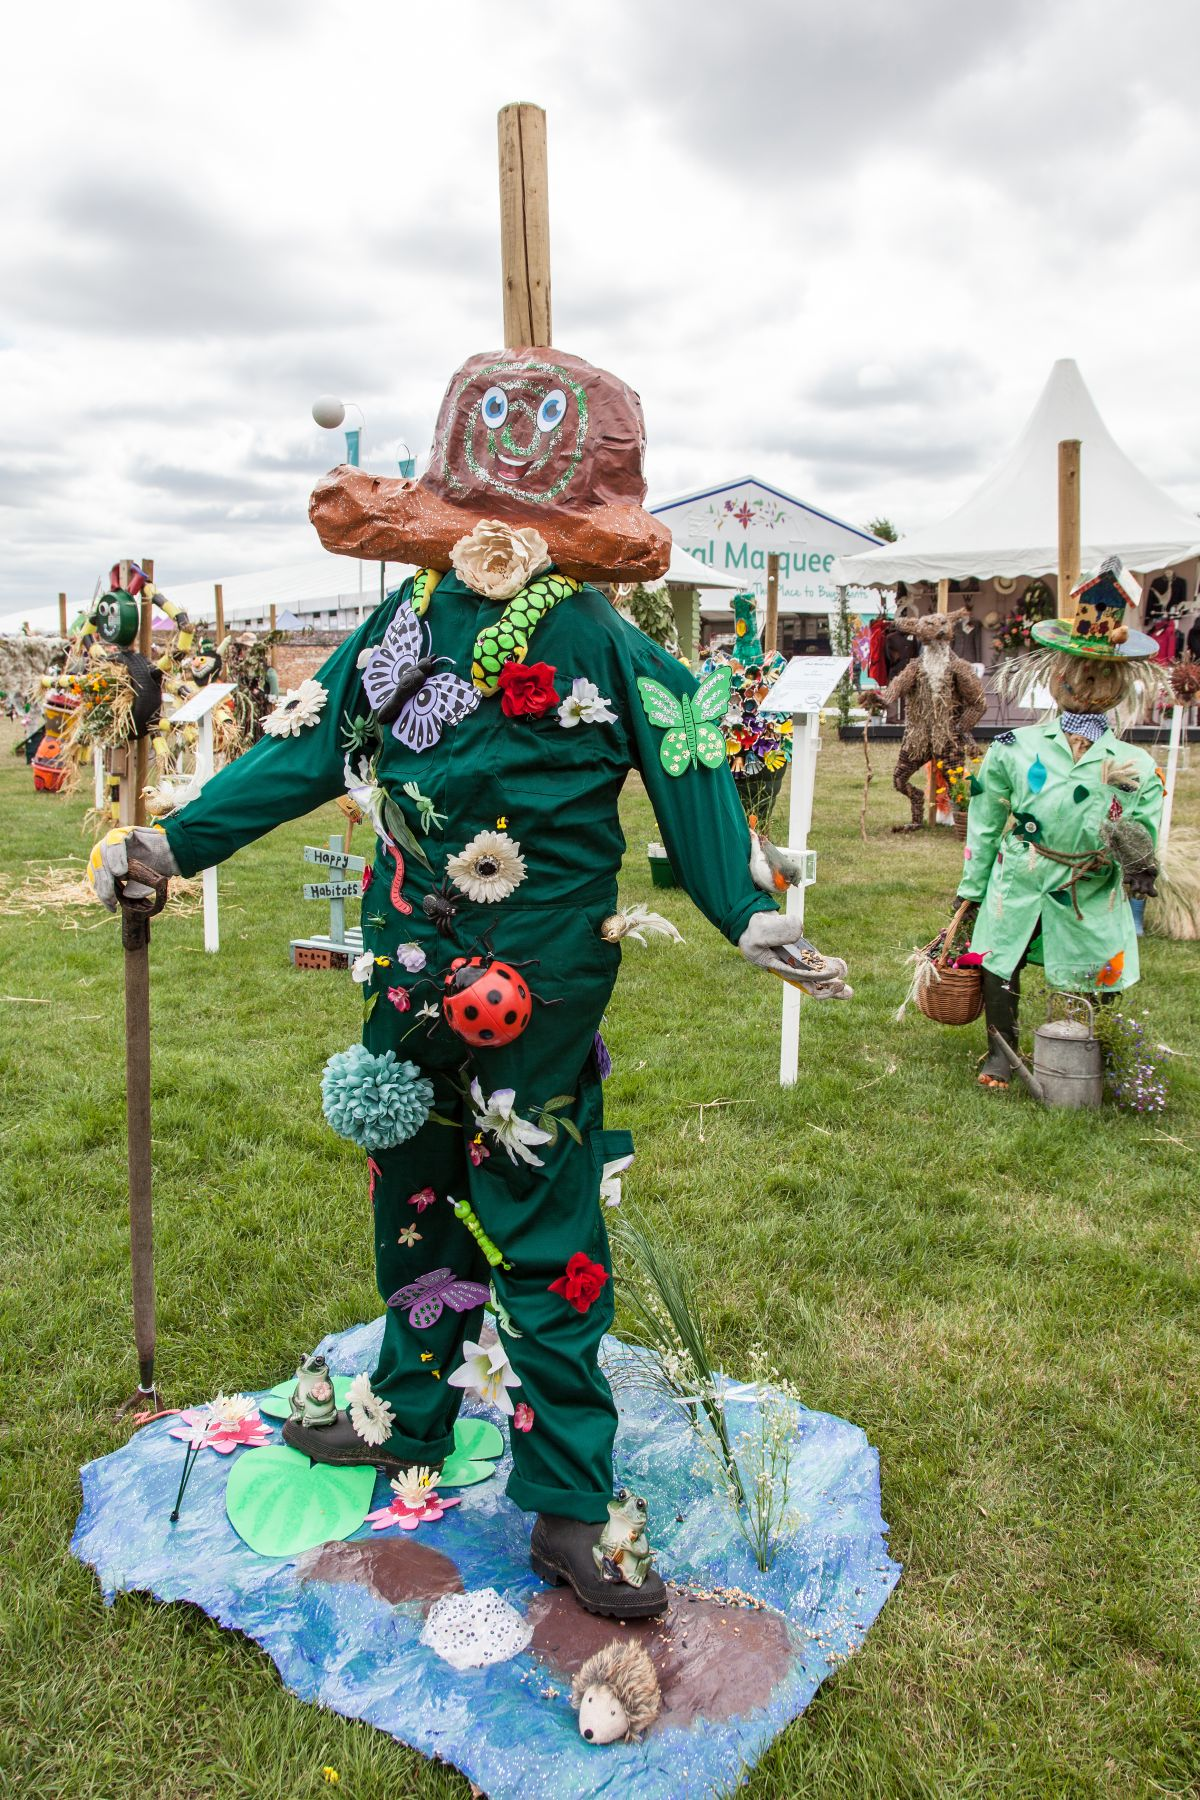 Not all scarecrows have to look scary. Even a cute and happy one can make a nice lawn ornament